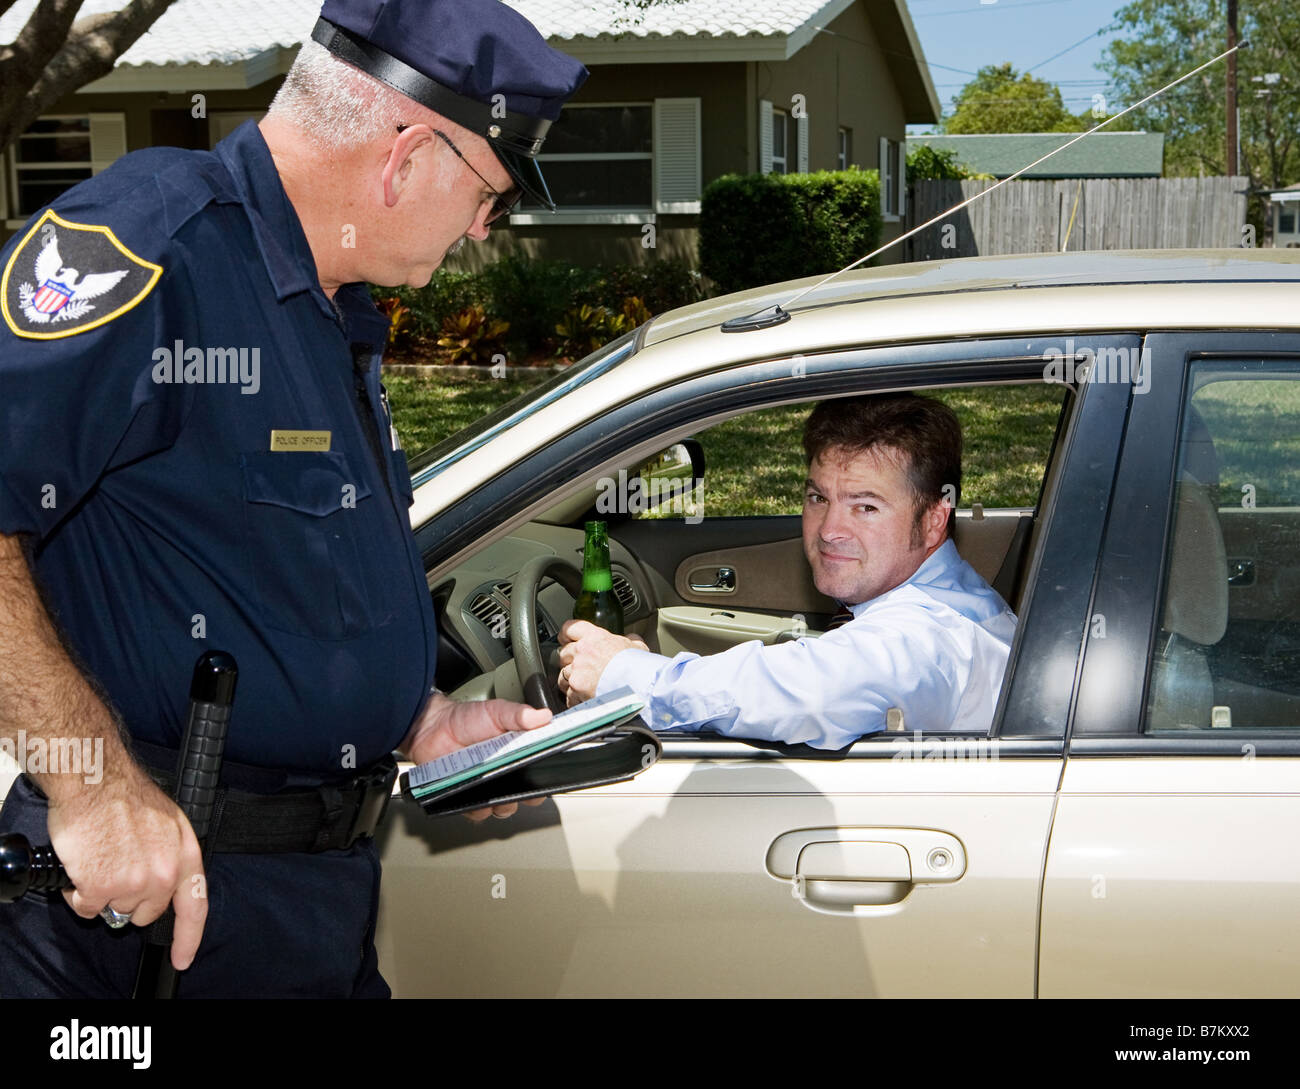 Police officer pulling over a drunk driver The driver is holding a beer and looking embarassed - Stock Image